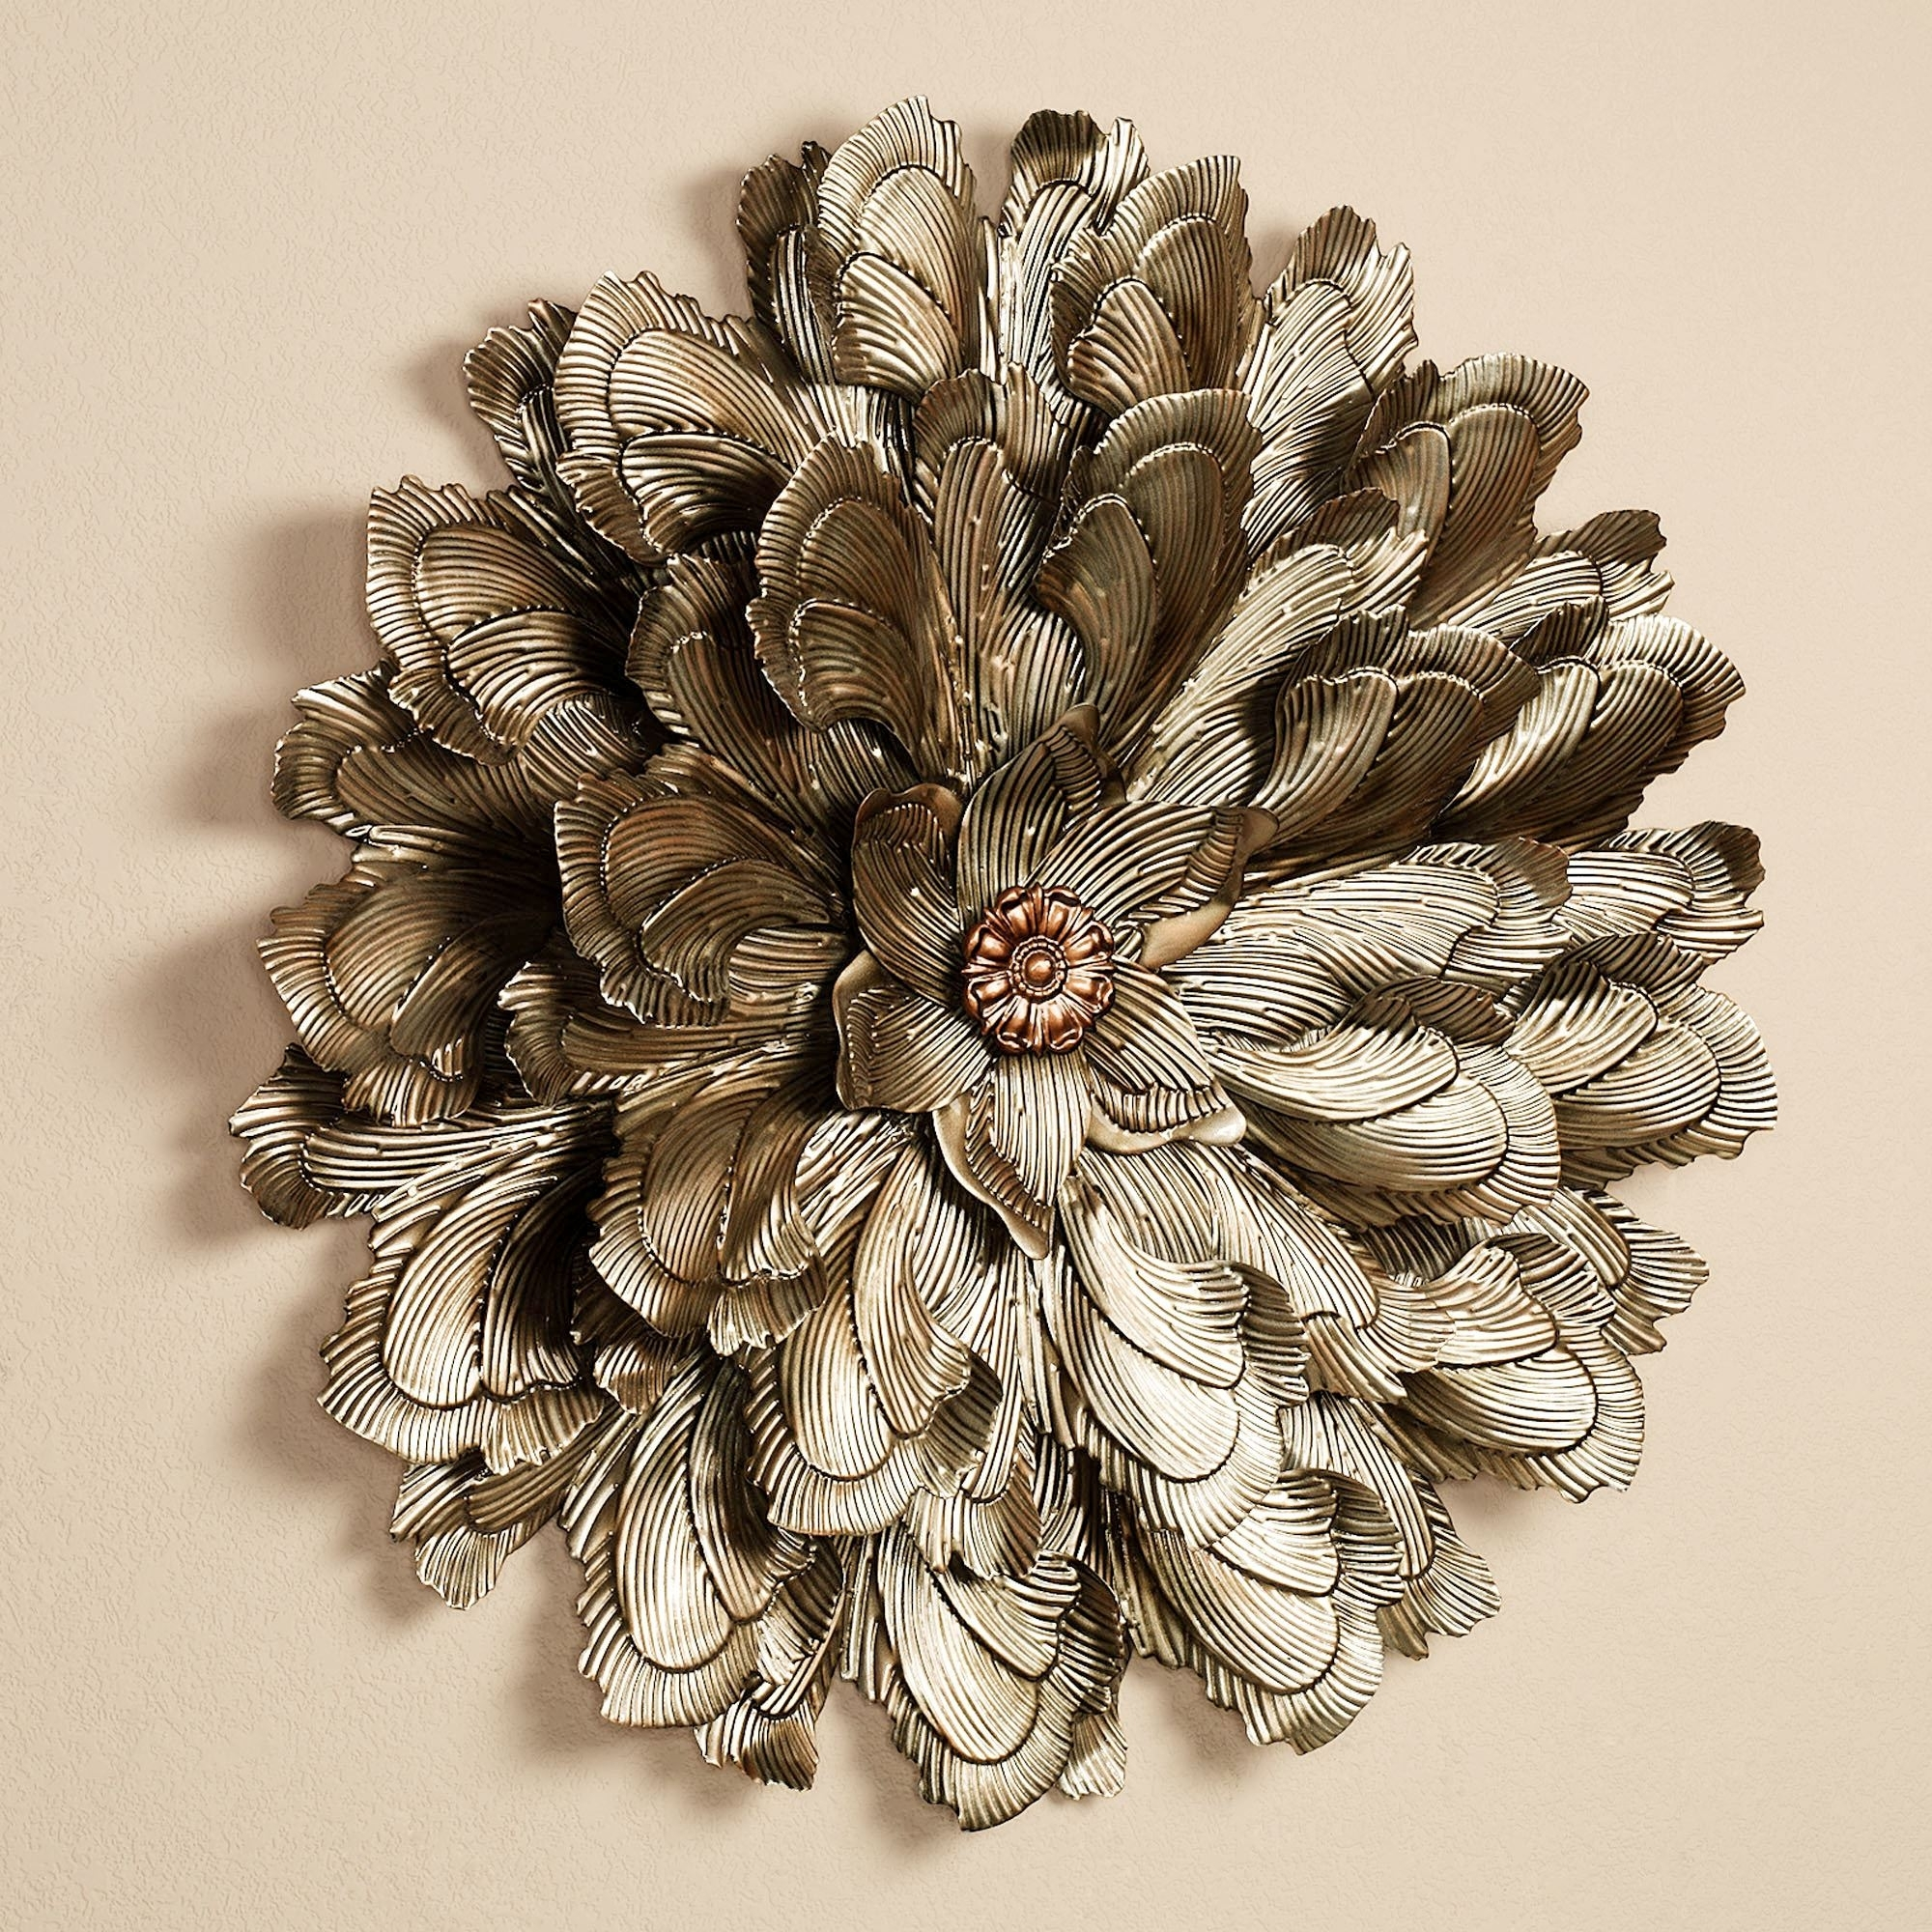 Z Elegant Metal Flower Wall Art – Home Design And Wall Decoration Ideas Pertaining To Metal Flowers Wall Art (View 9 of 20)